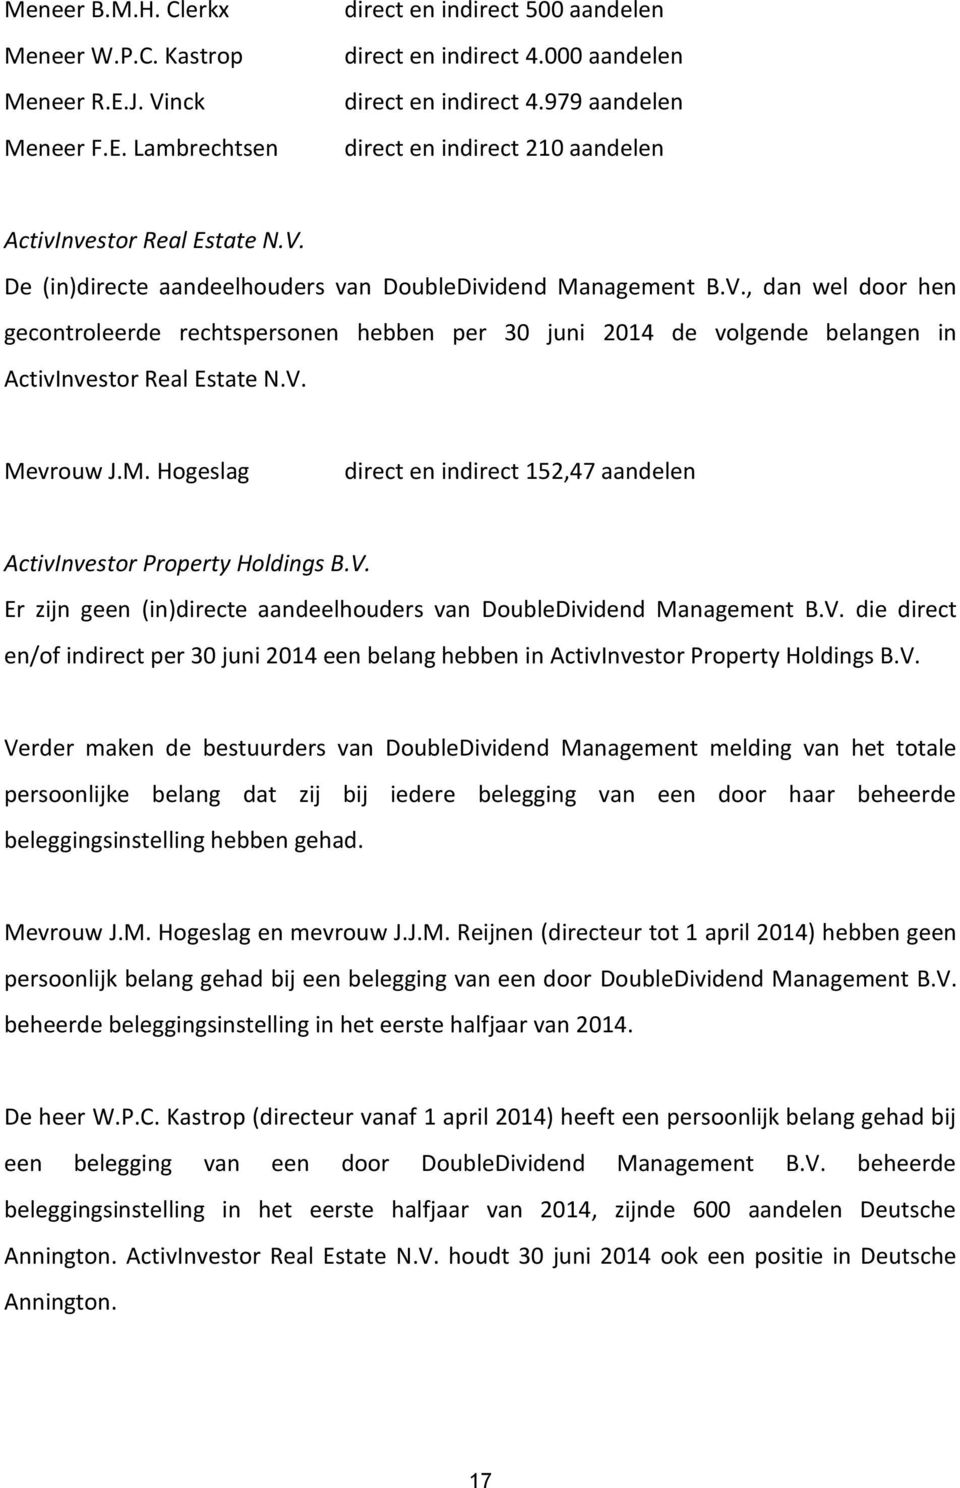 V. Mevrouw J.M. Hogeslag direct en indirect 152,47 aandelen ActivInvestor Property Holdings B.V. Er zijn geen (in)directe aandeelhouders van DoubleDividend Management B.V. die direct en/of indirect per 30 juni 2014 een belang hebben in ActivInvestor Property Holdings B.